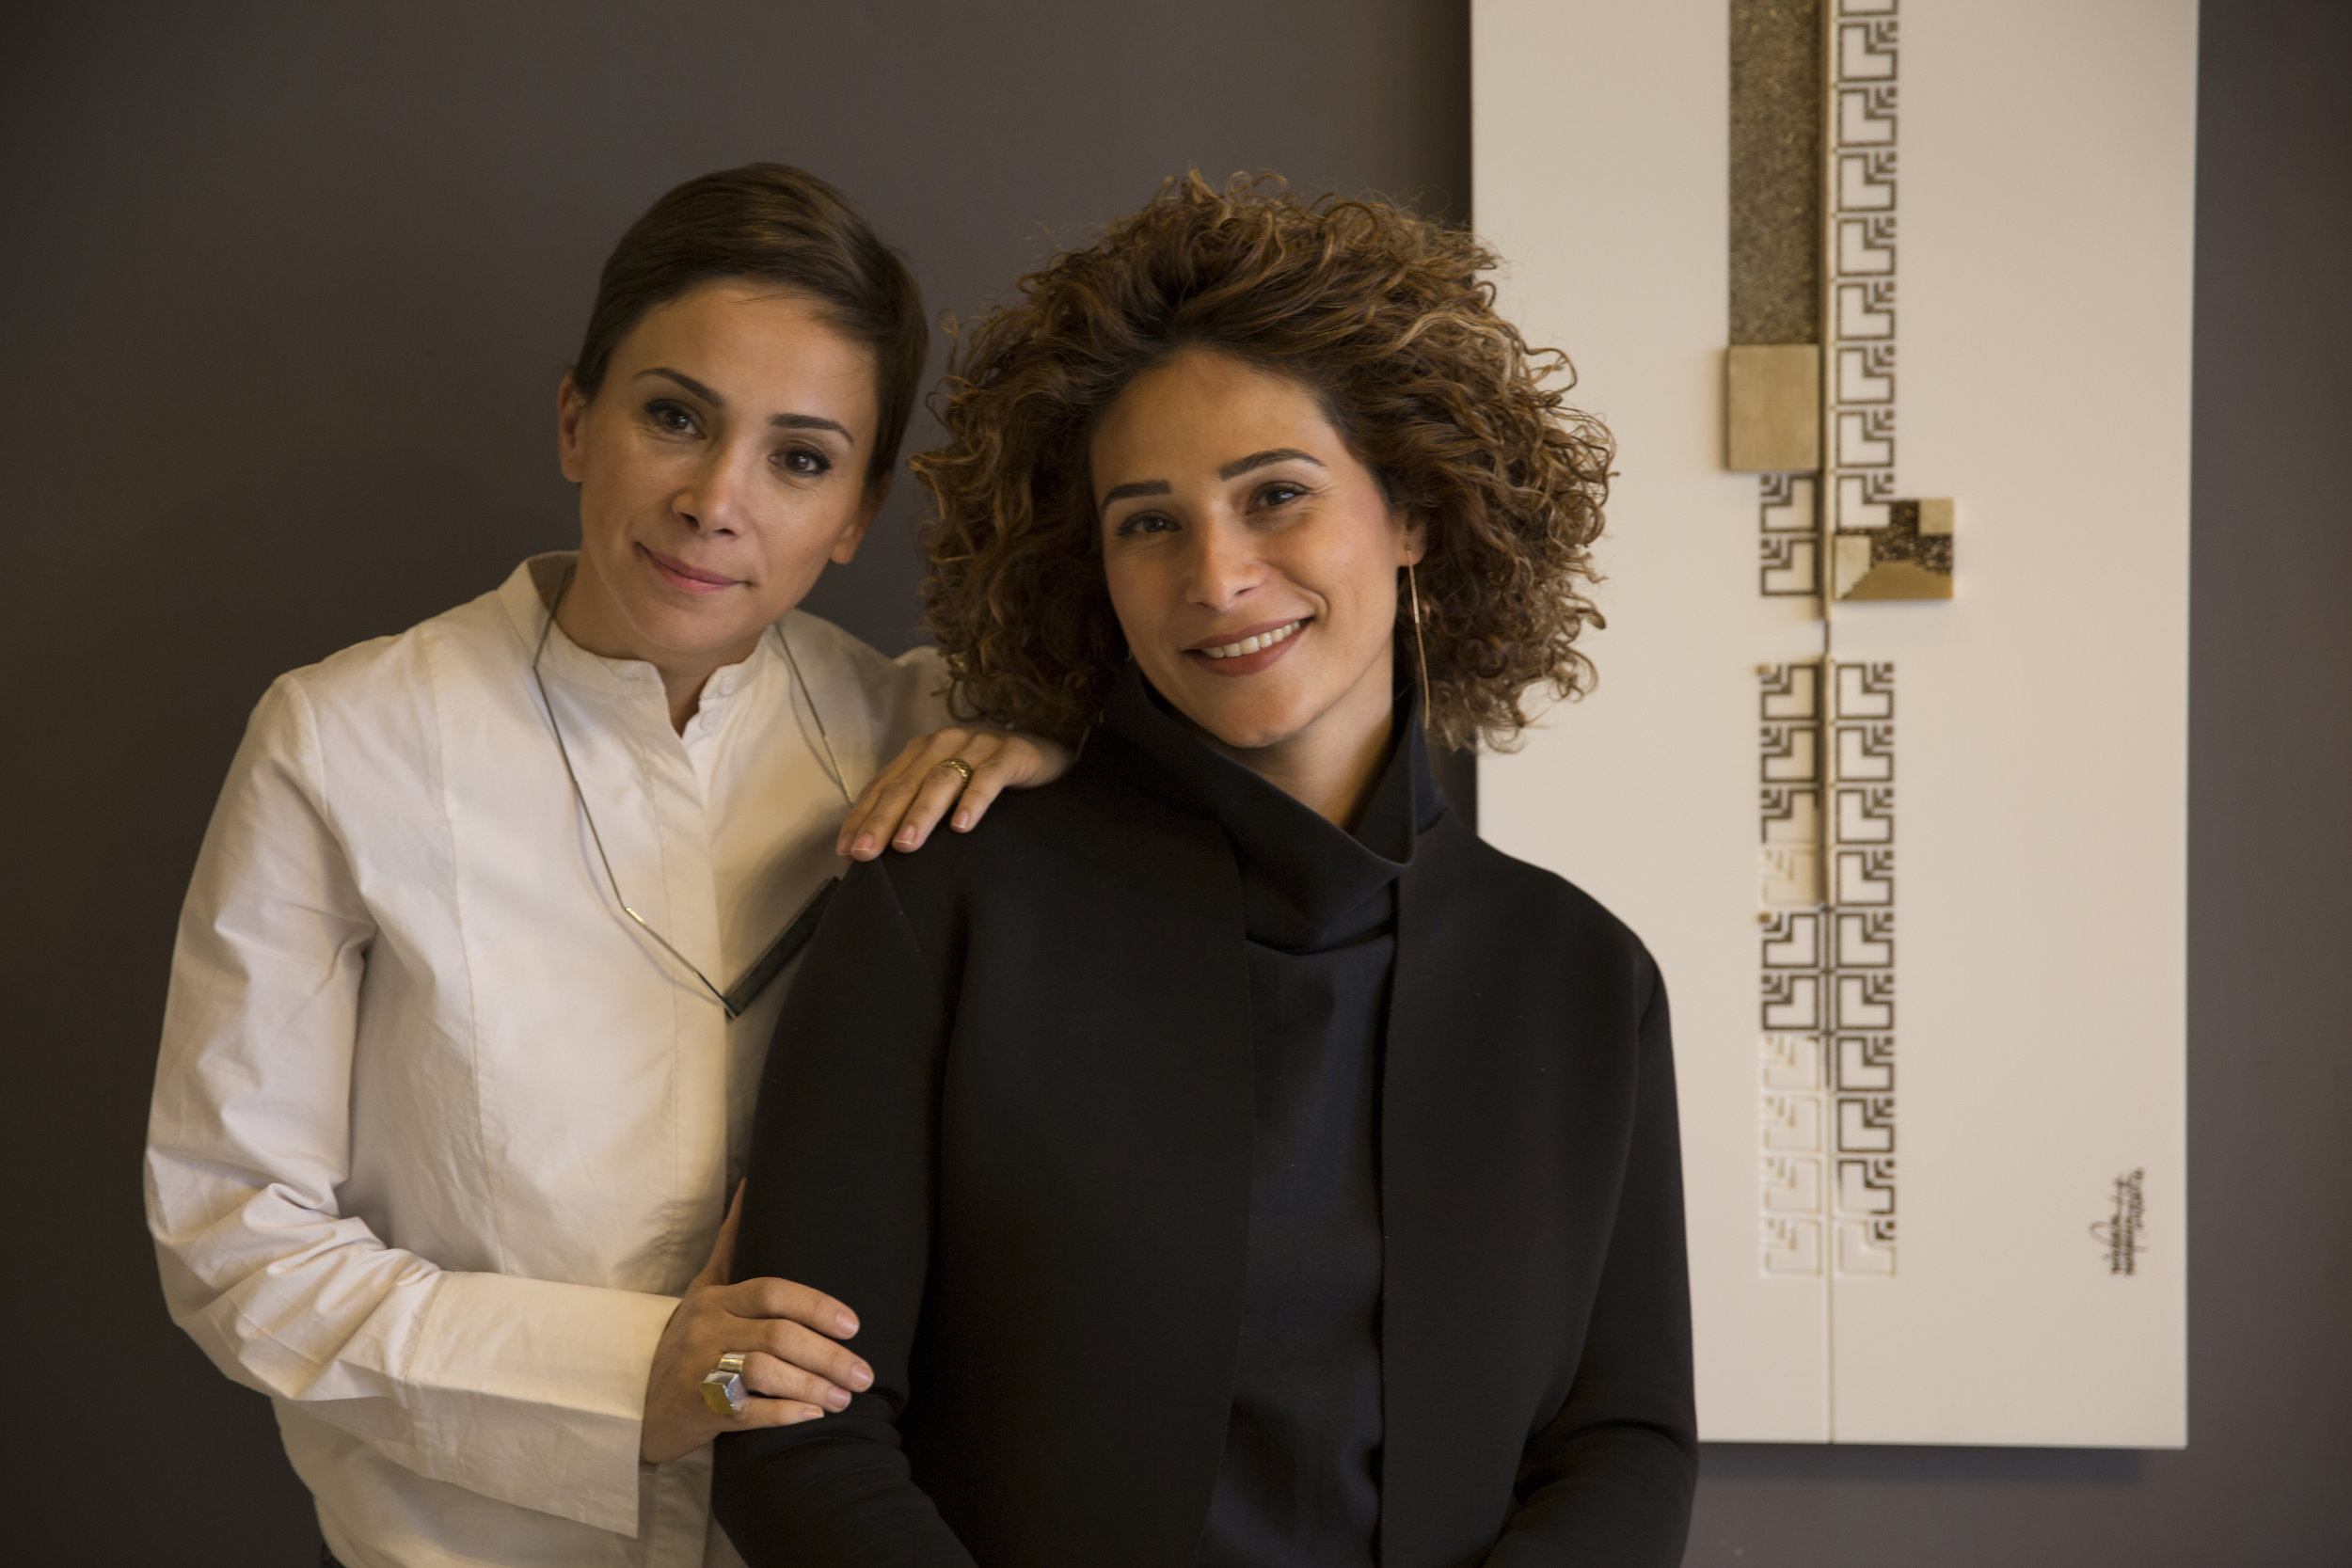 (L-R) Nisreen and Nermeen Abudail, the sister duo who make up naqsh collective have been nominated for the fifth edition of the Jameel Prize. Image courtesy of the artists.